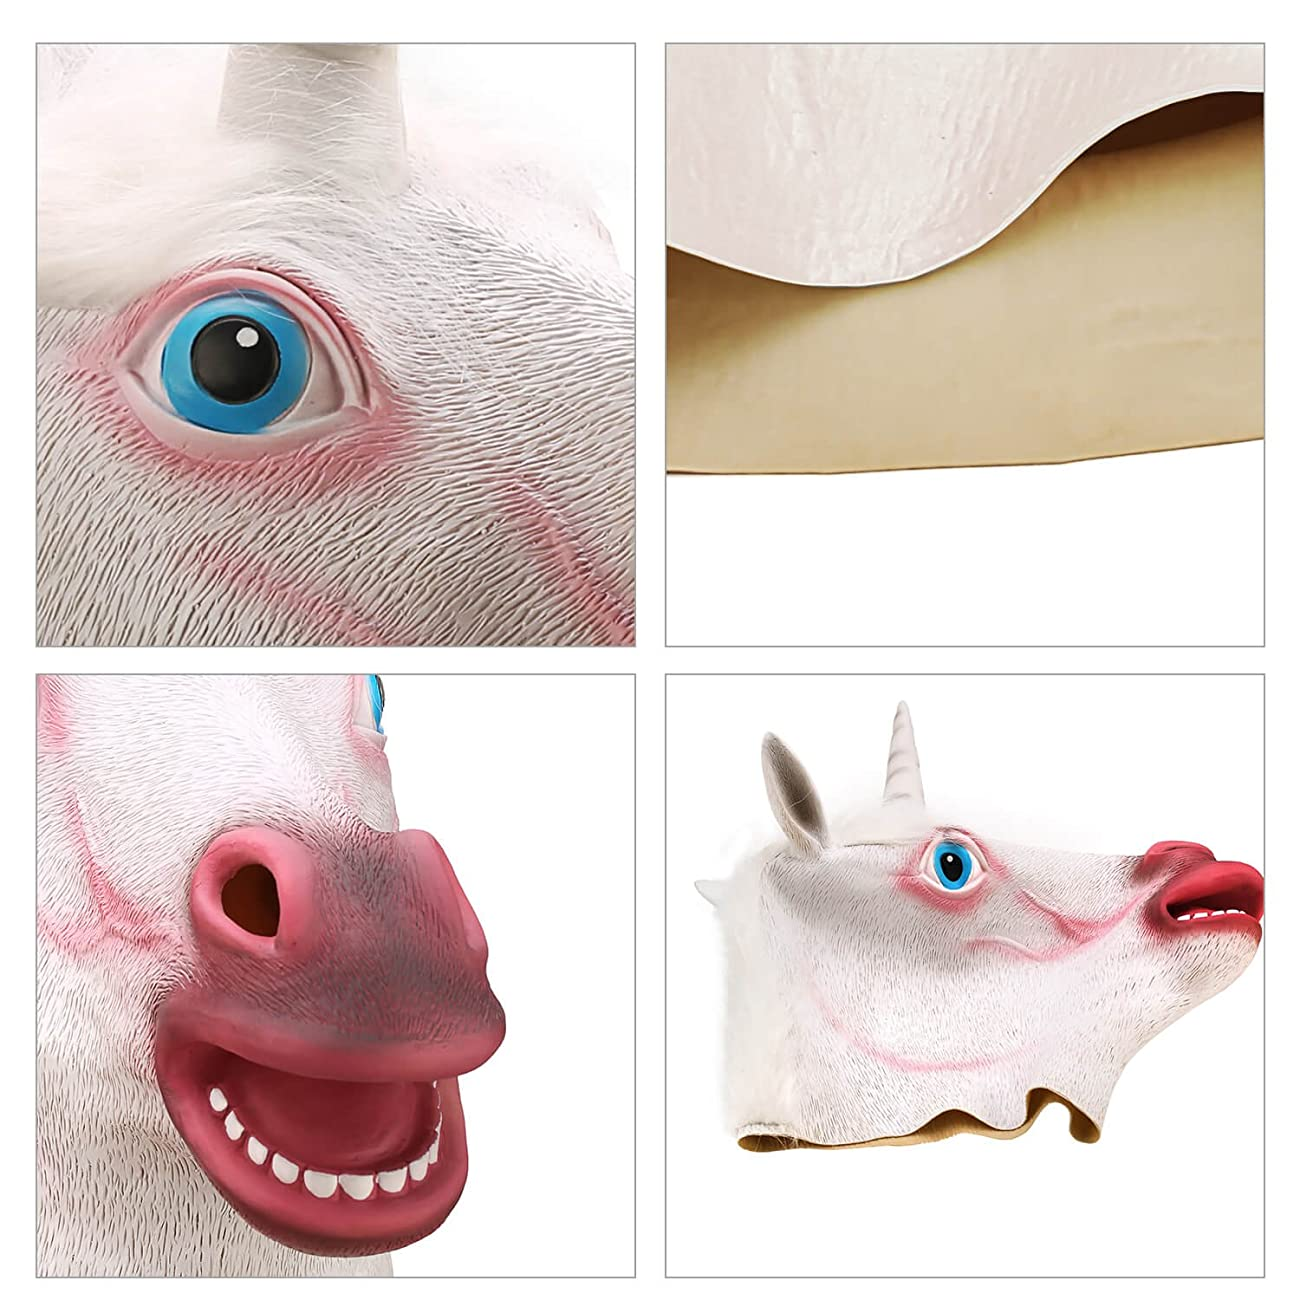 Ylovetoys Unicorn Head Mask Halloween Costume Party Novelty Latex Animal Mask 5